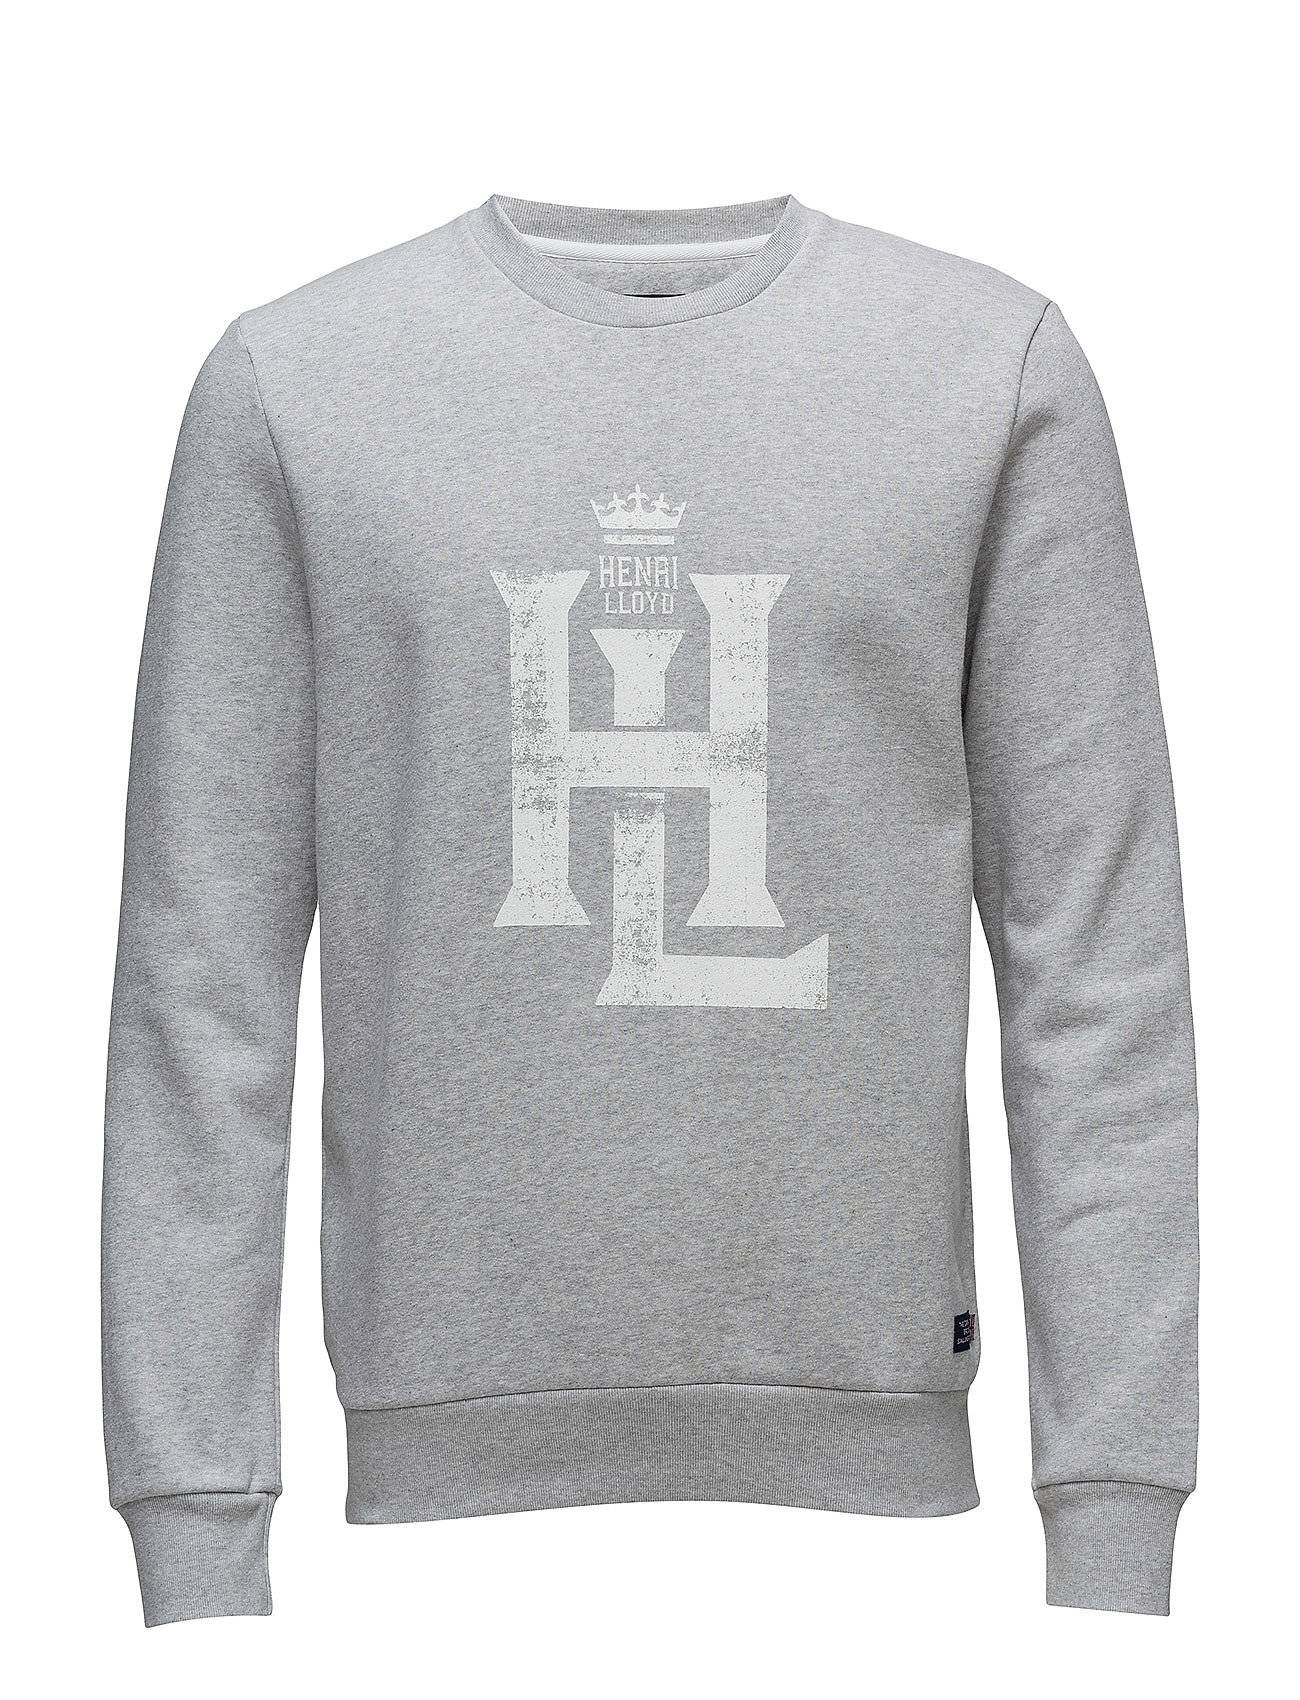 Henri Lloyd Daston Branded Sweat